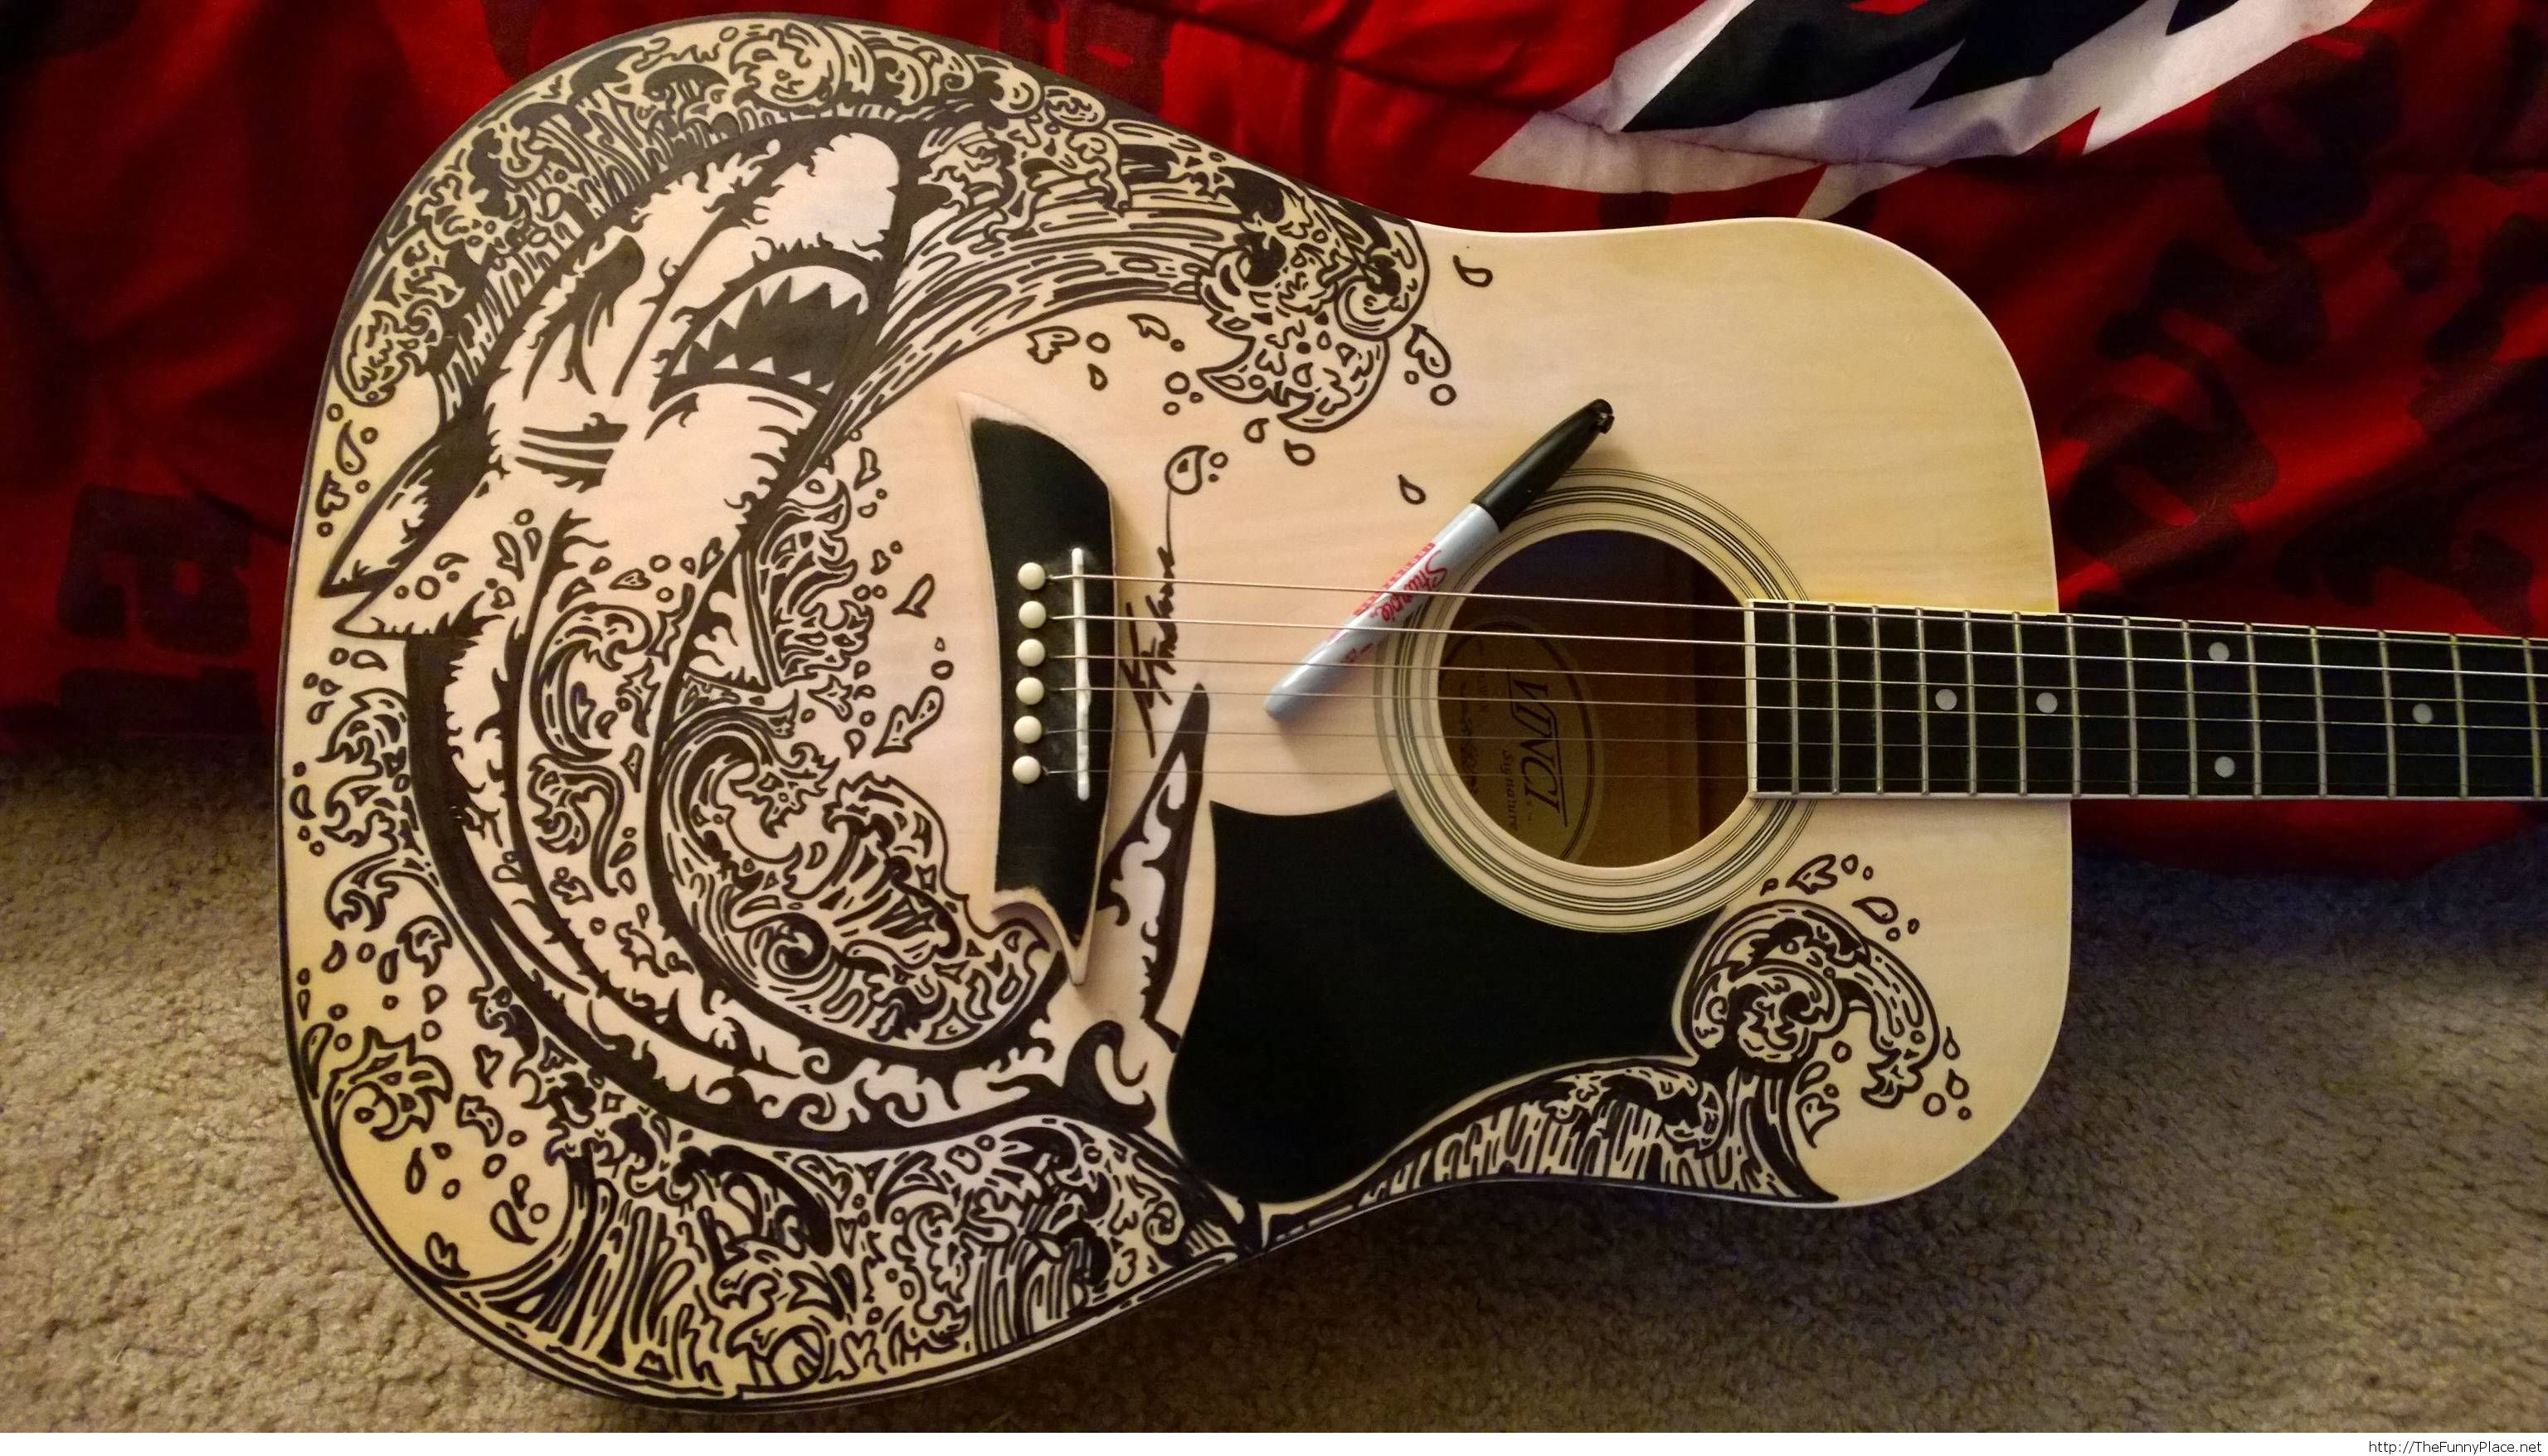 Cool drawing on guitar